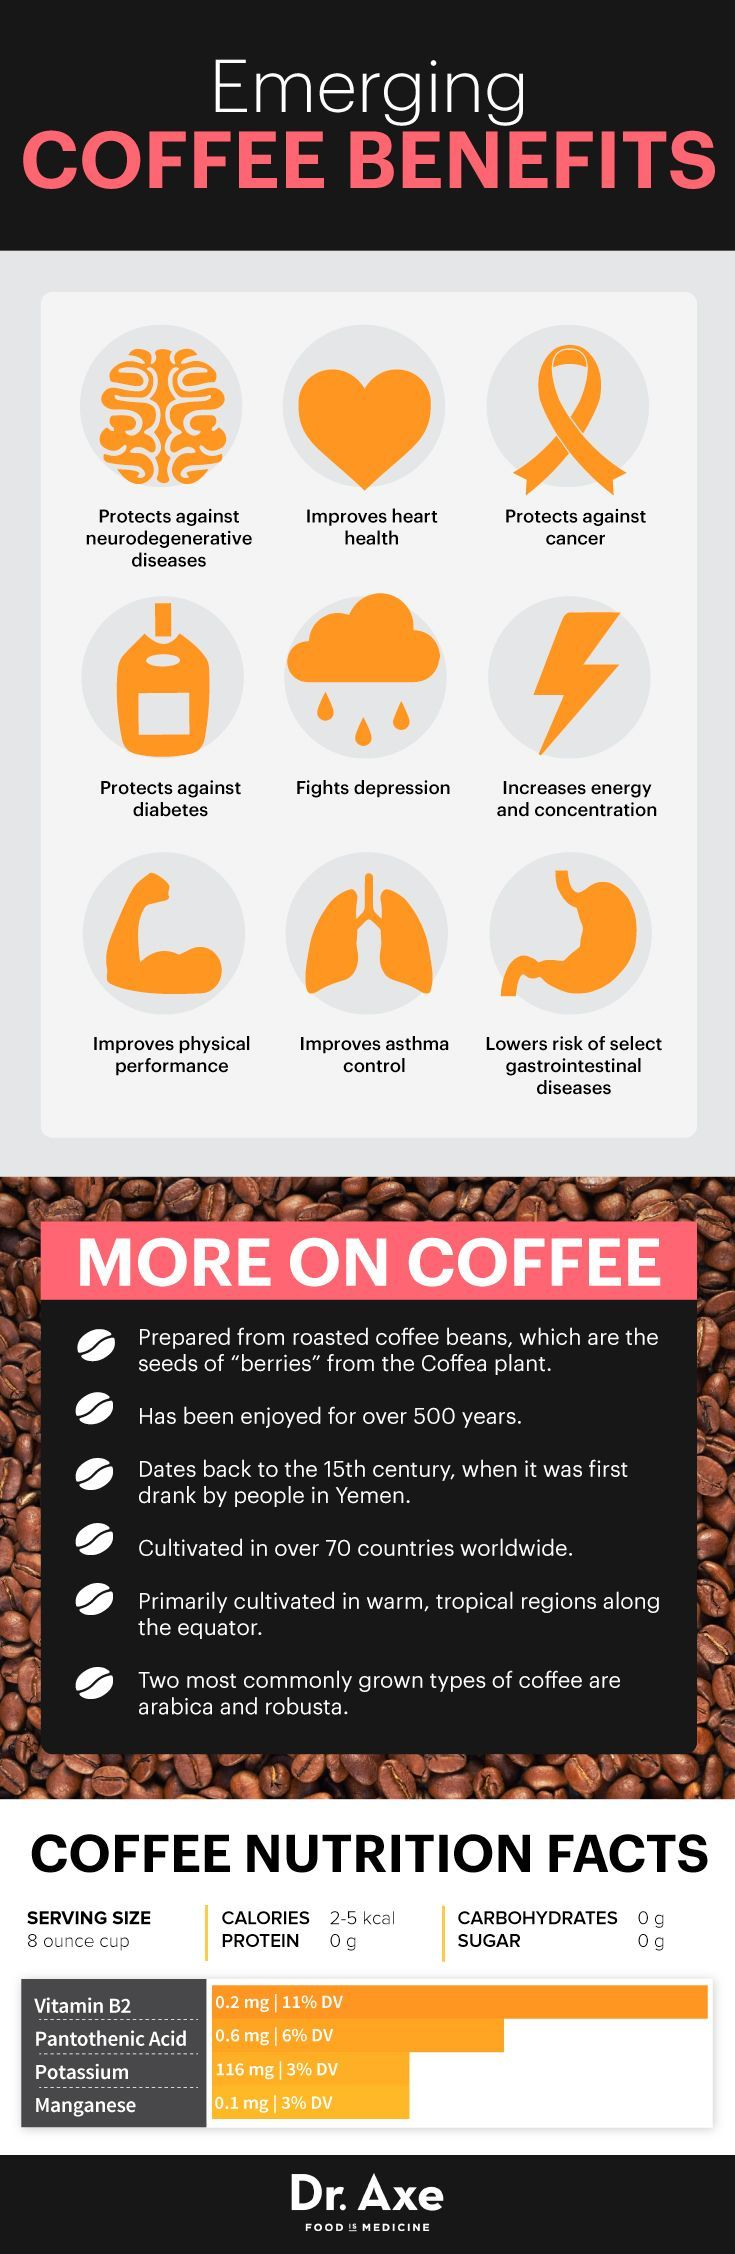 Coffee benefits infographic dr axe